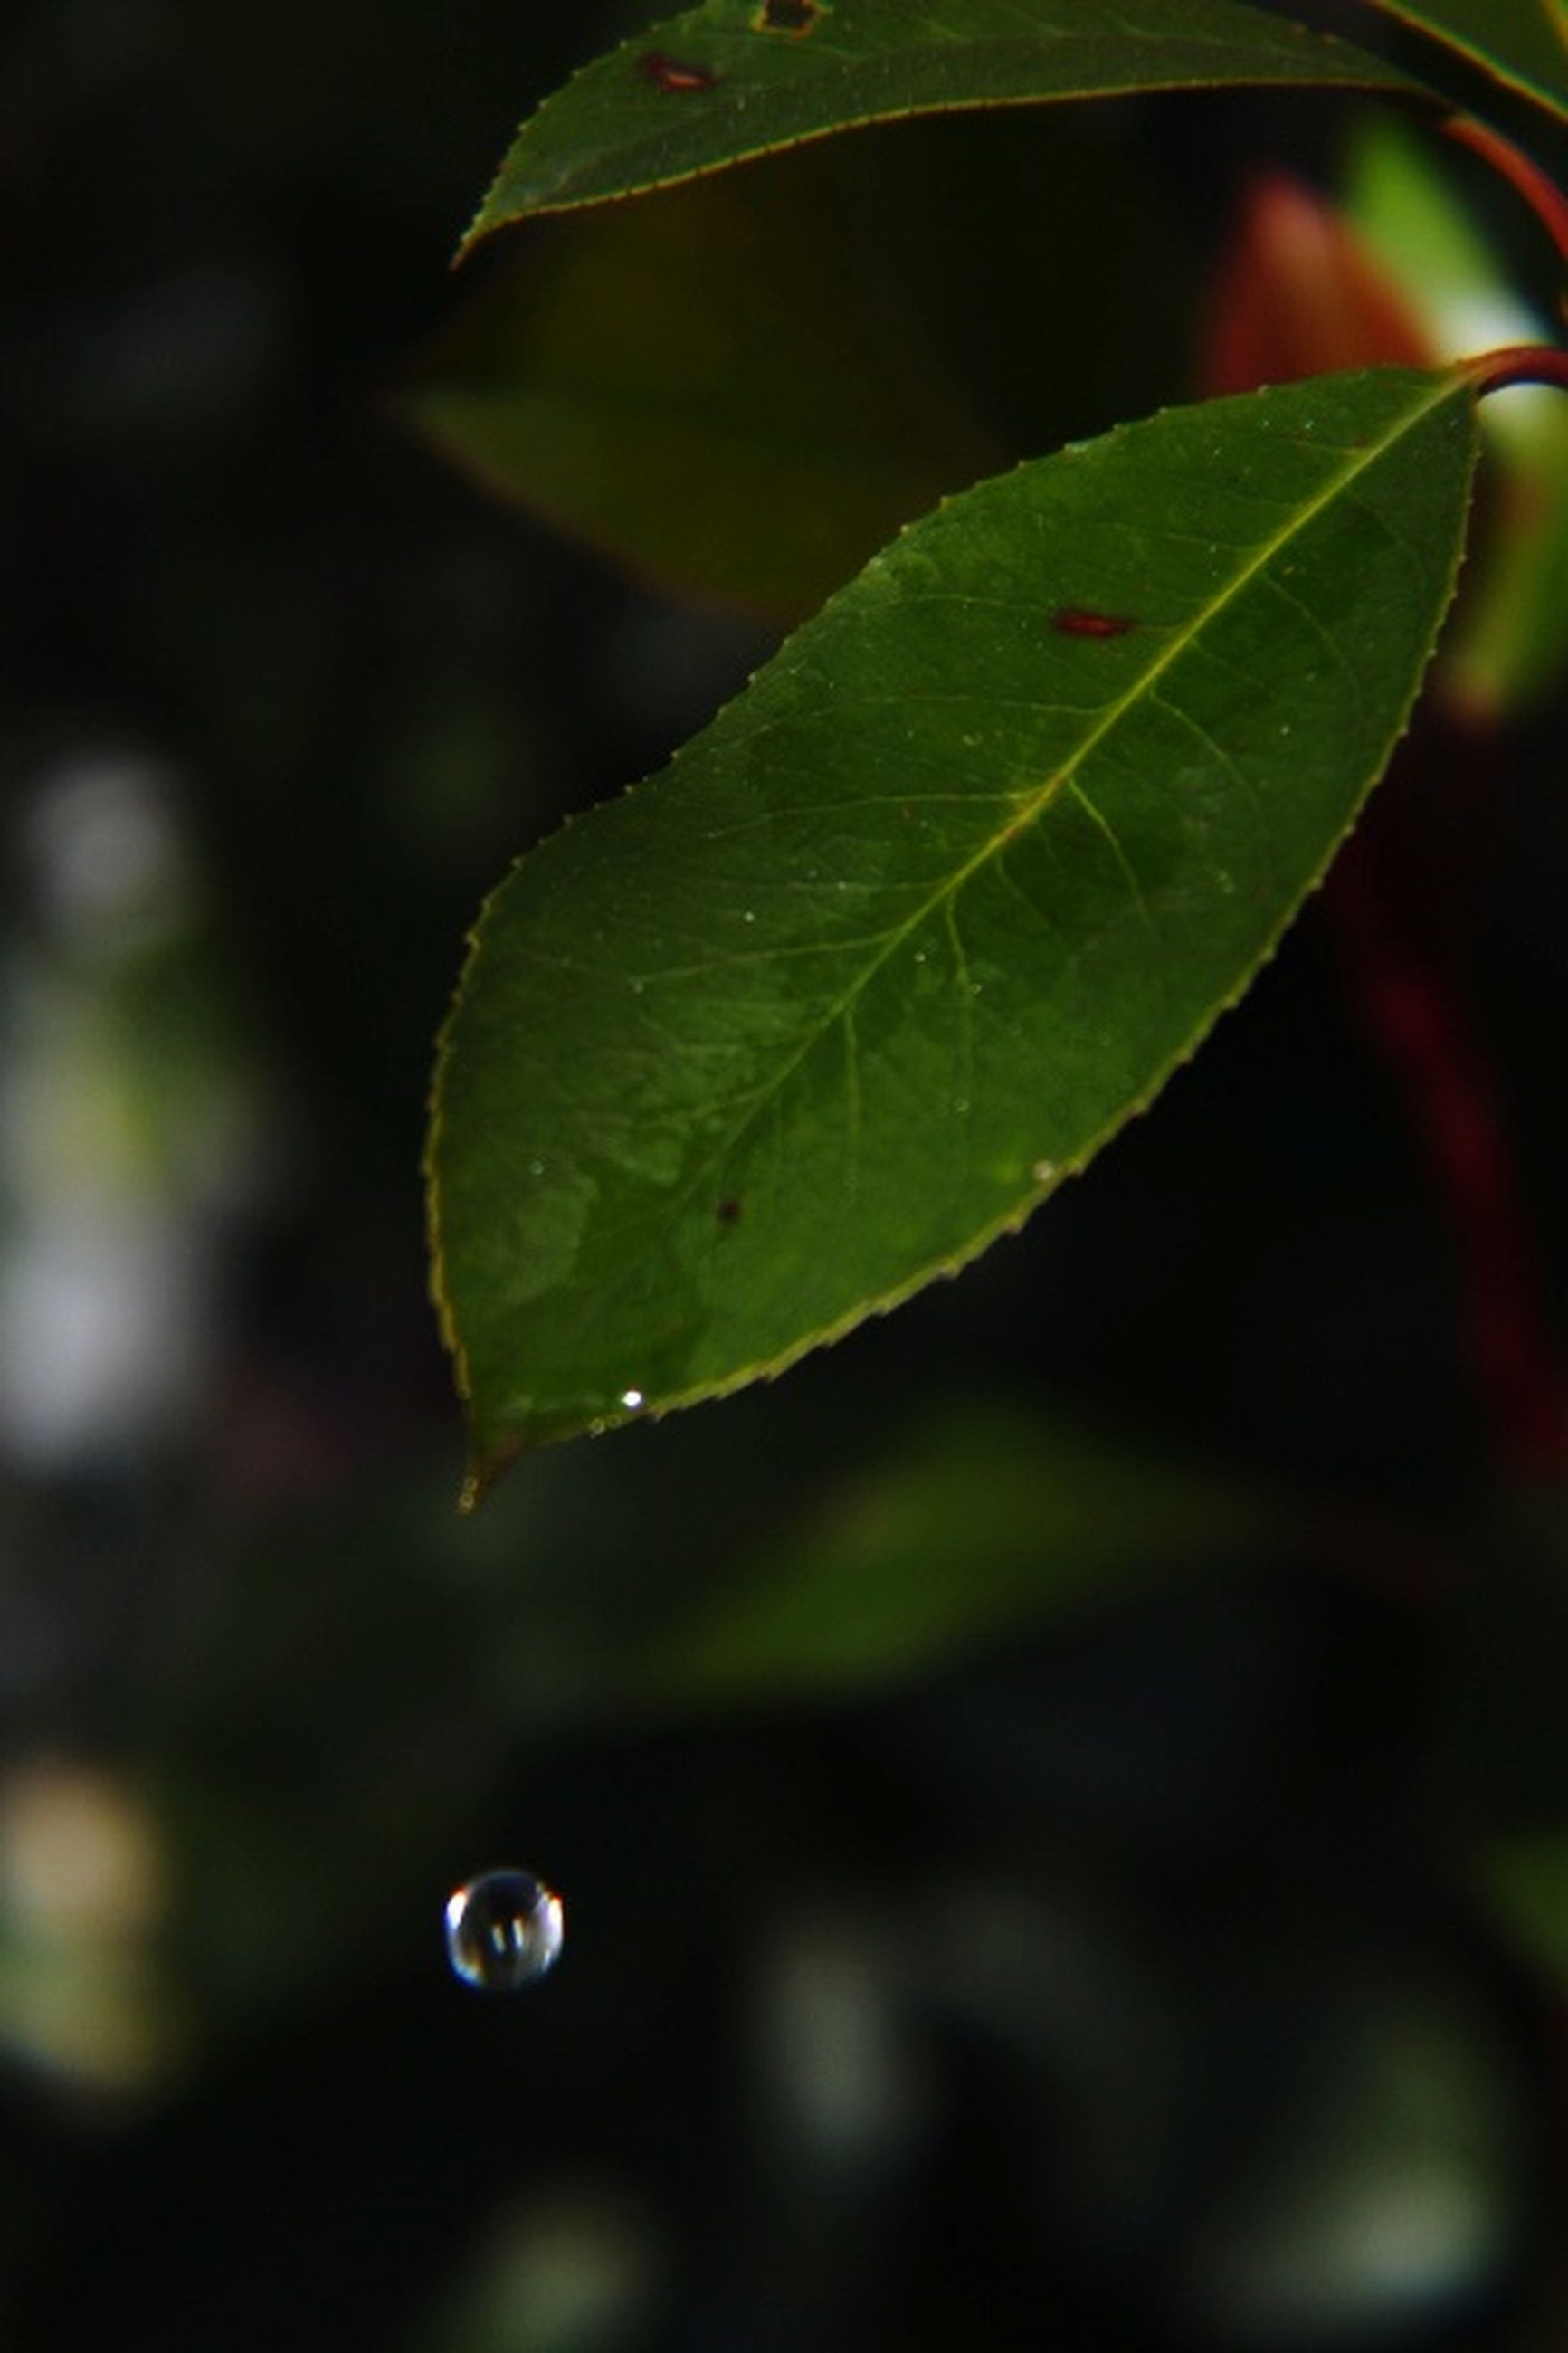 leaf, plant part, drop, plant, water, green color, close-up, nature, focus on foreground, growth, wet, no people, outdoors, day, selective focus, beauty in nature, freshness, vulnerability, purity, dew, raindrop, leaves